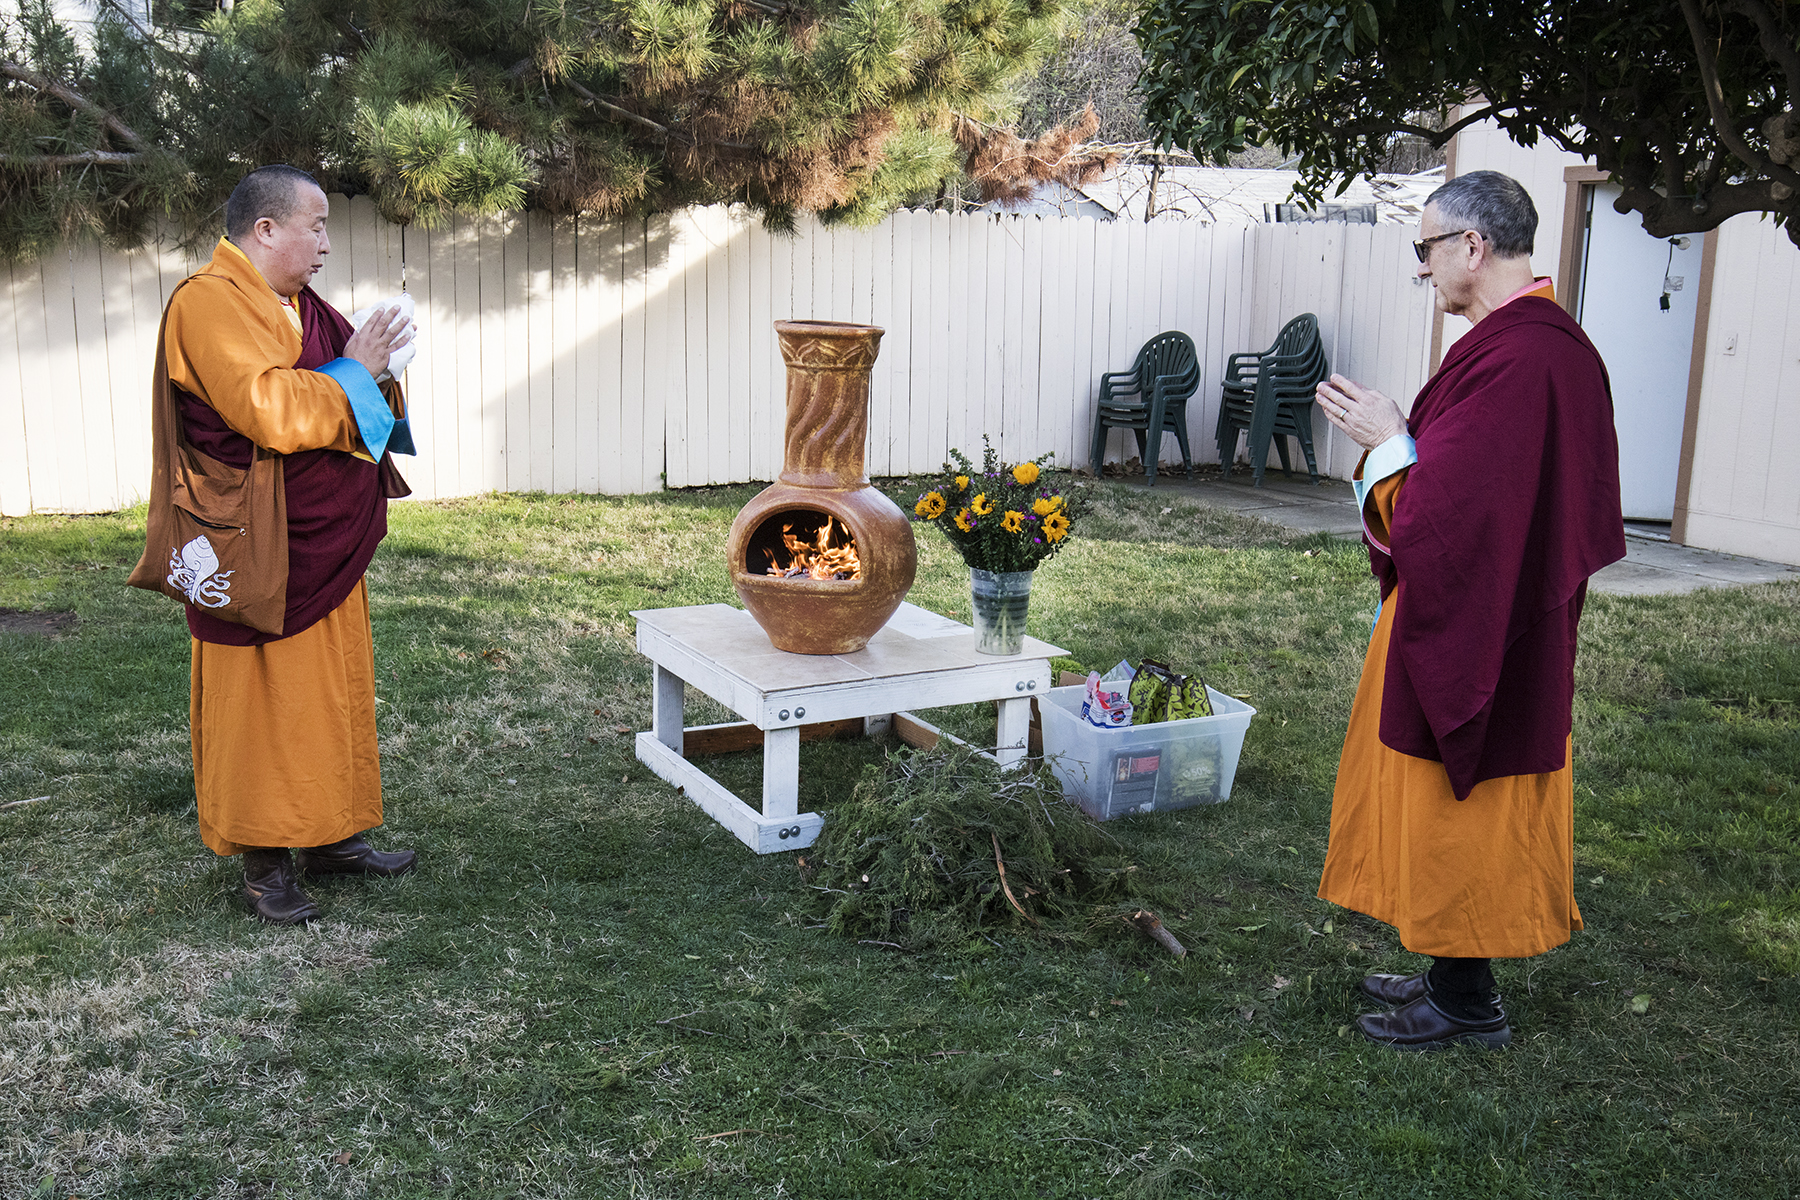 Lama Yeshe Jinpa and Geshe Damchoebaazar Gurjav perform a Riwo Sangchod Smoke Offering Losar 2021 / 2148 Celebration